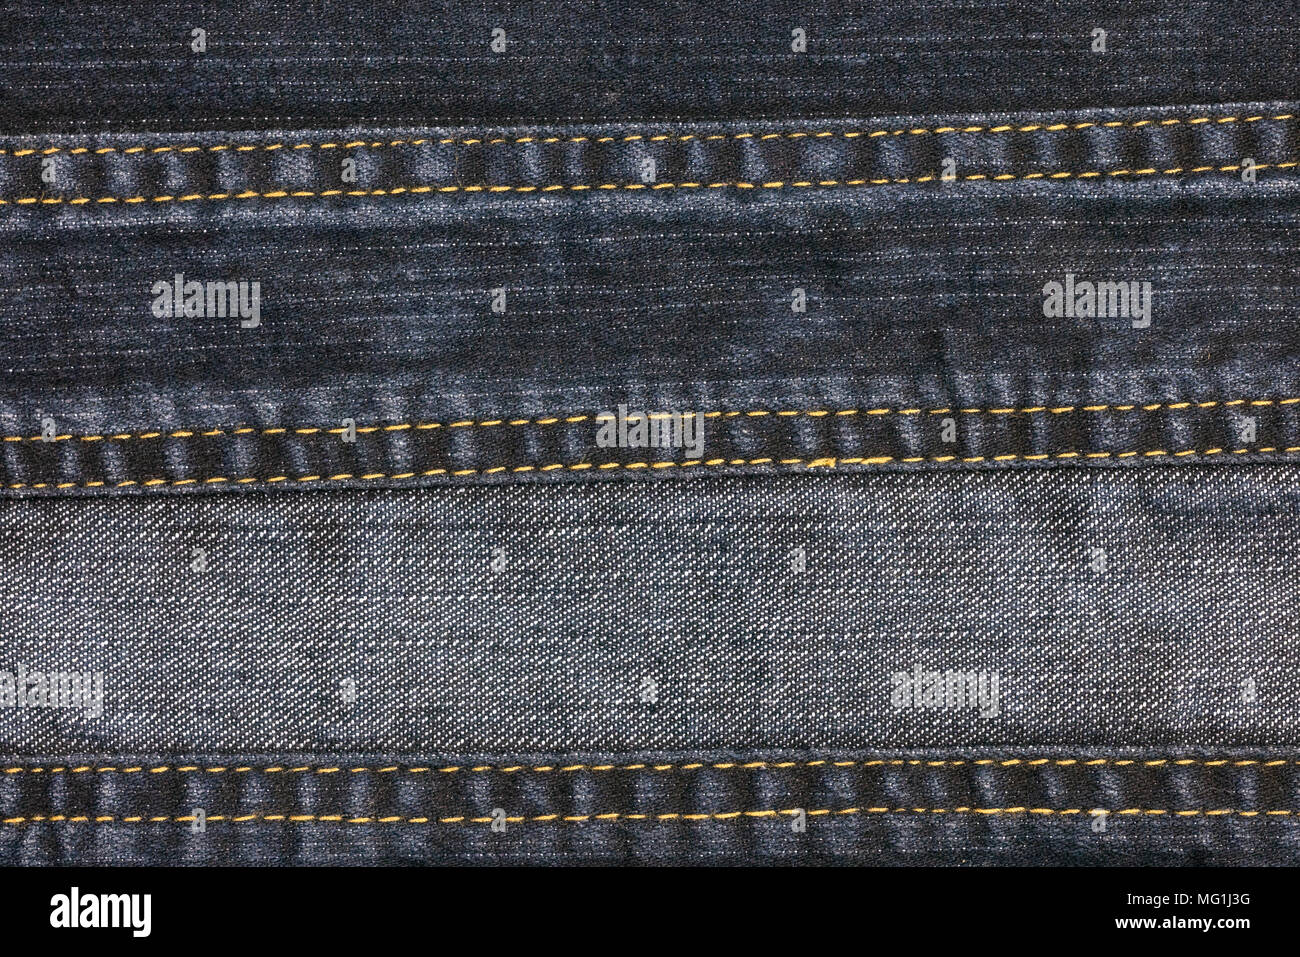 old denim fabric stitched abstract background and texture of jean